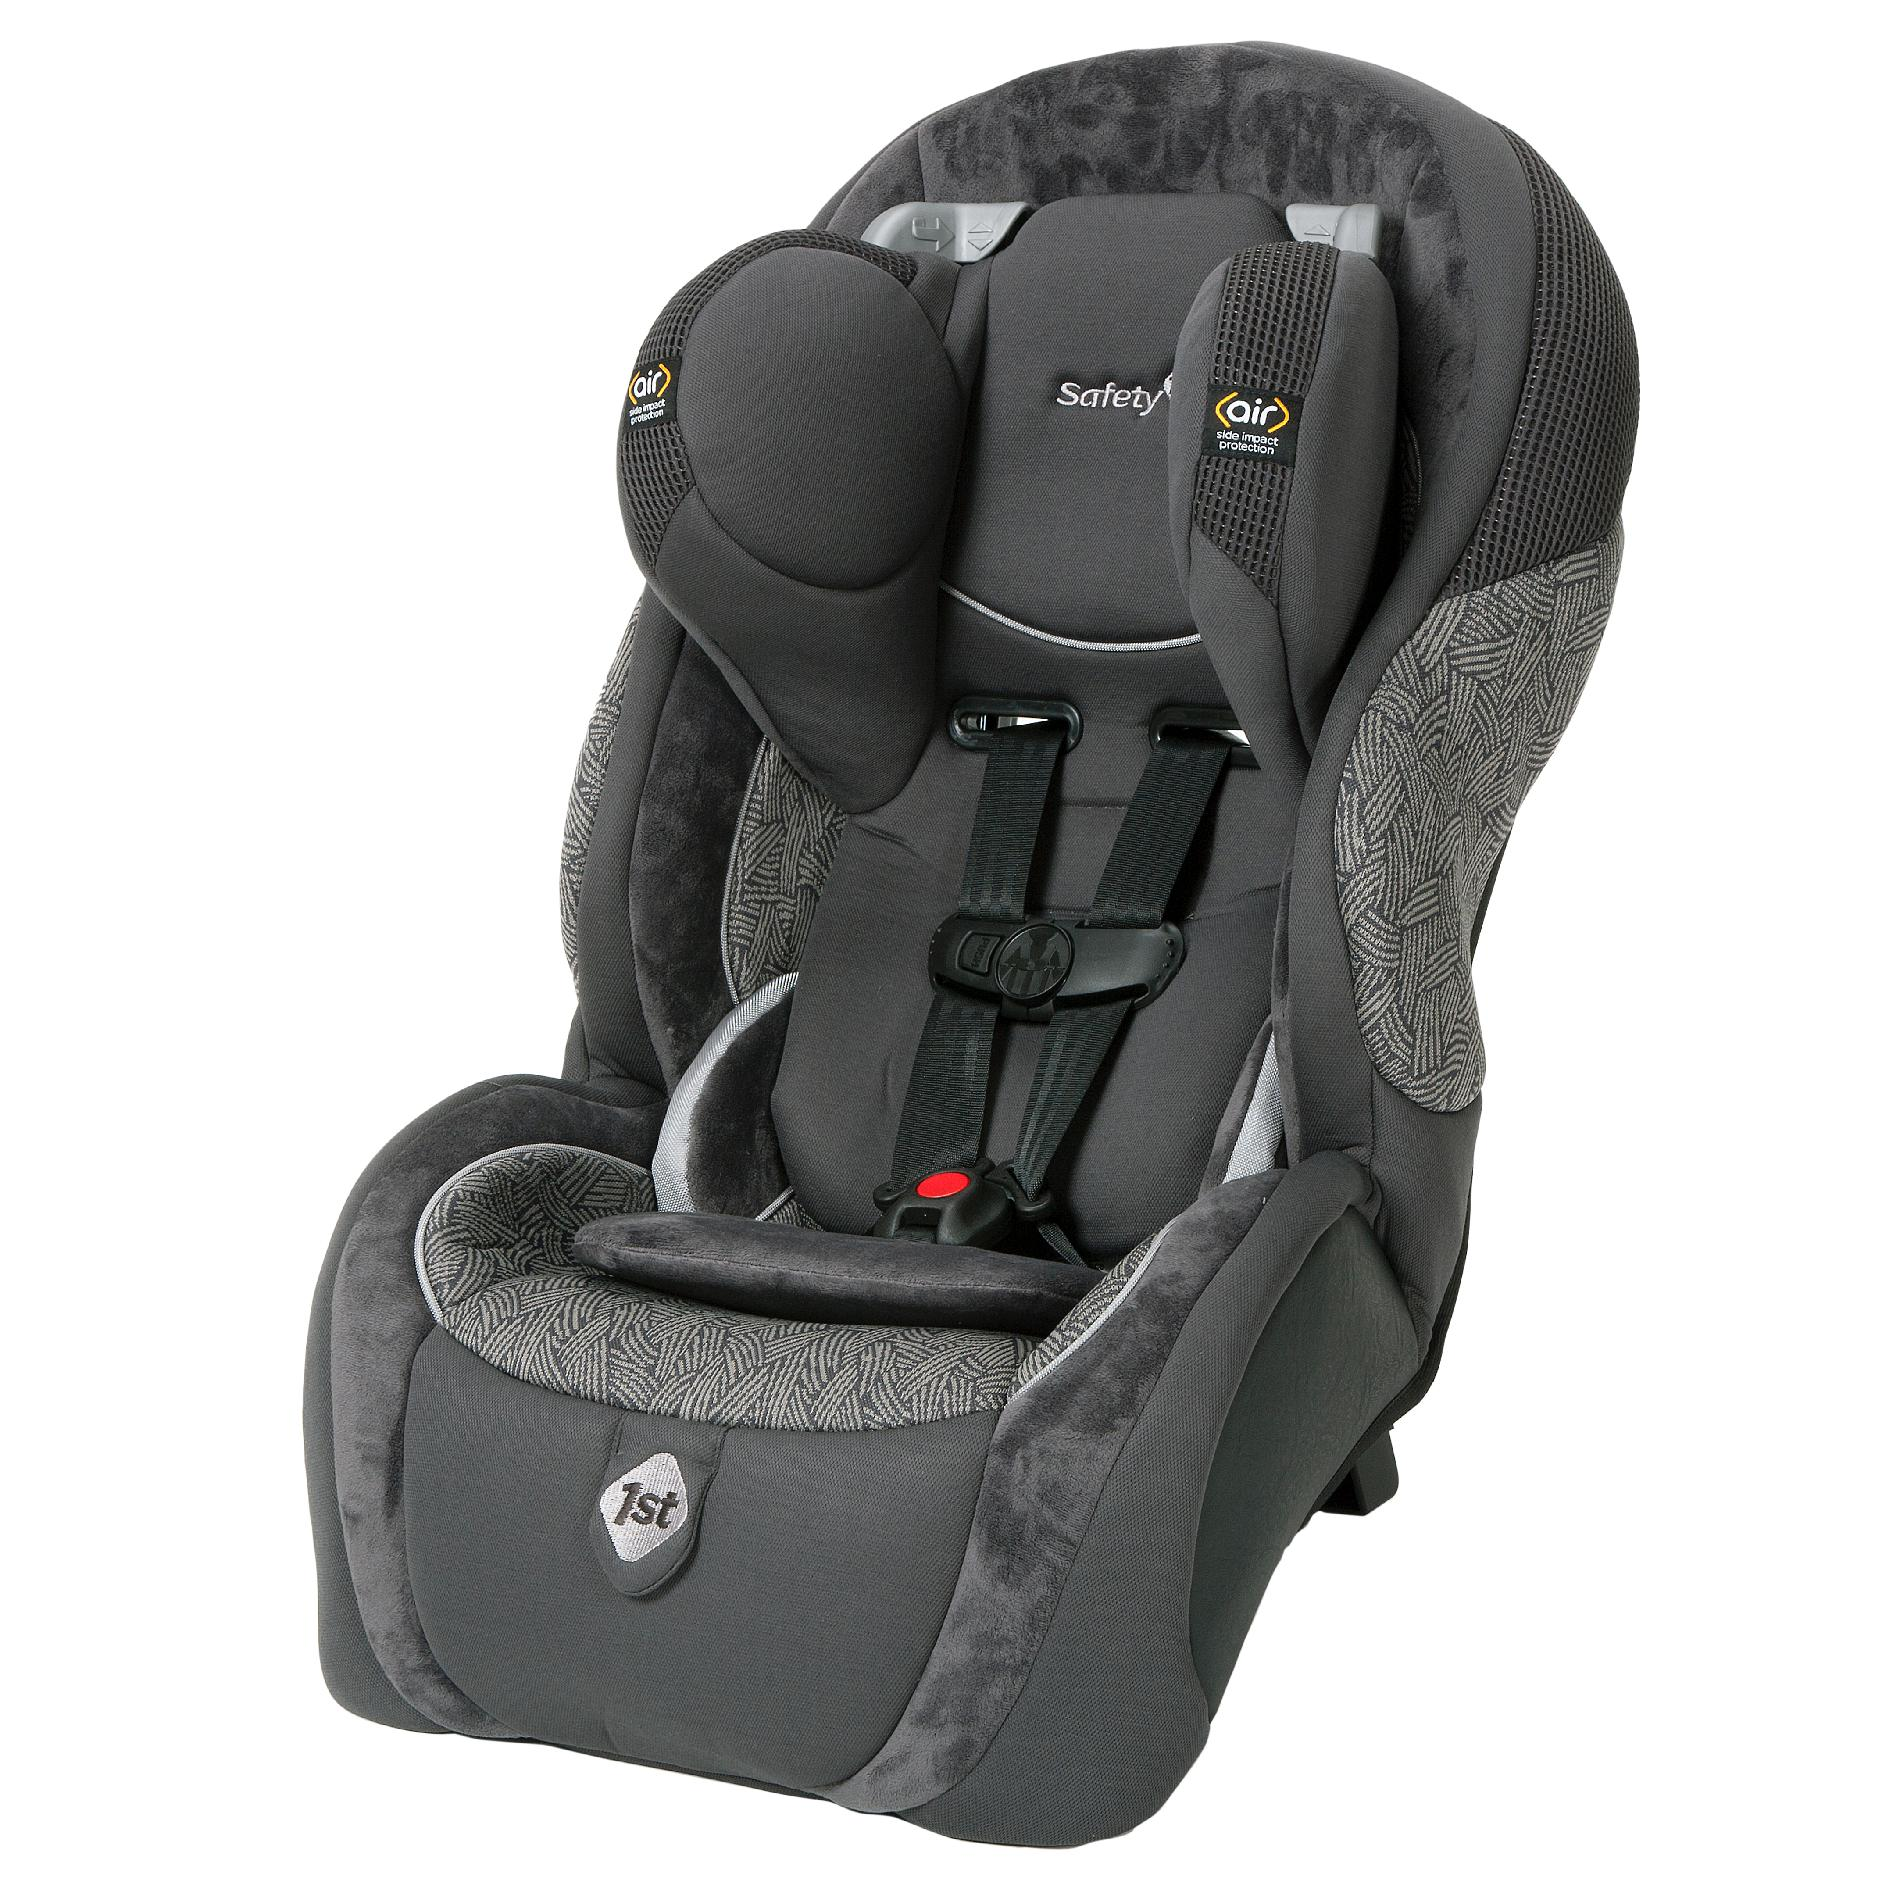 Safety 1st Complete Air 70 Convertible Car Seat Decatur